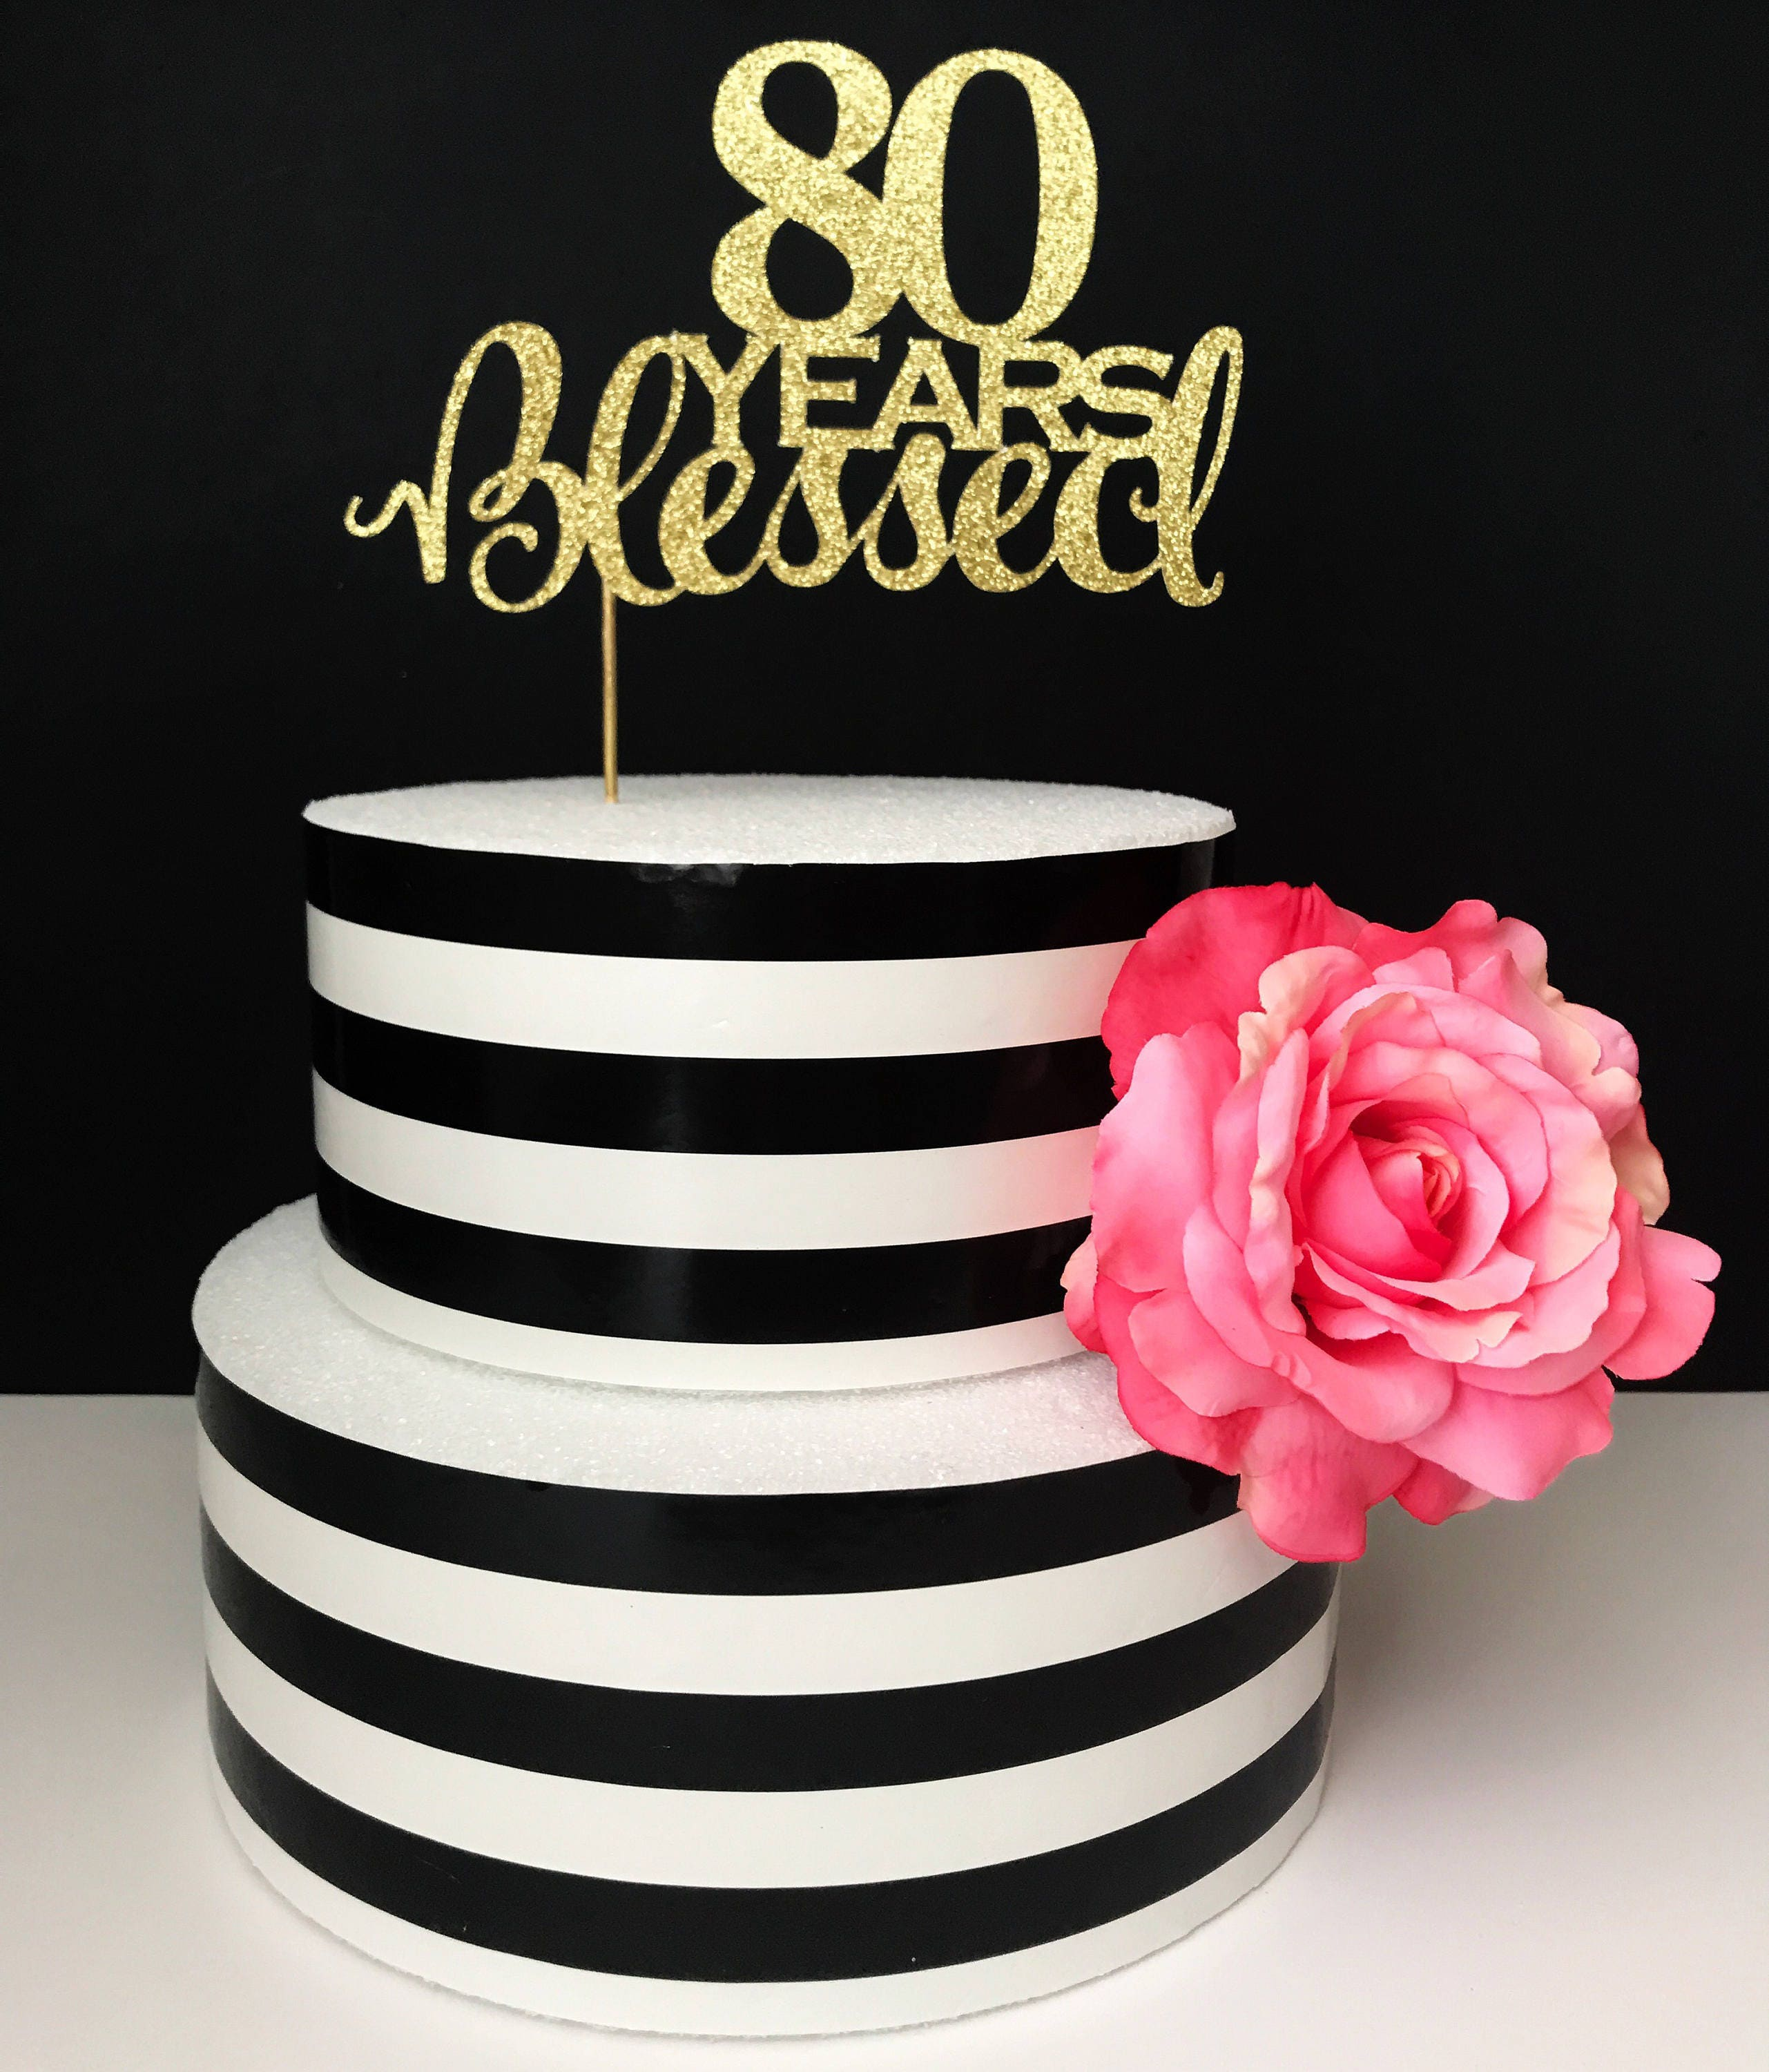 80th birthday Cake Topper 80 years blessed cake topper Any ...